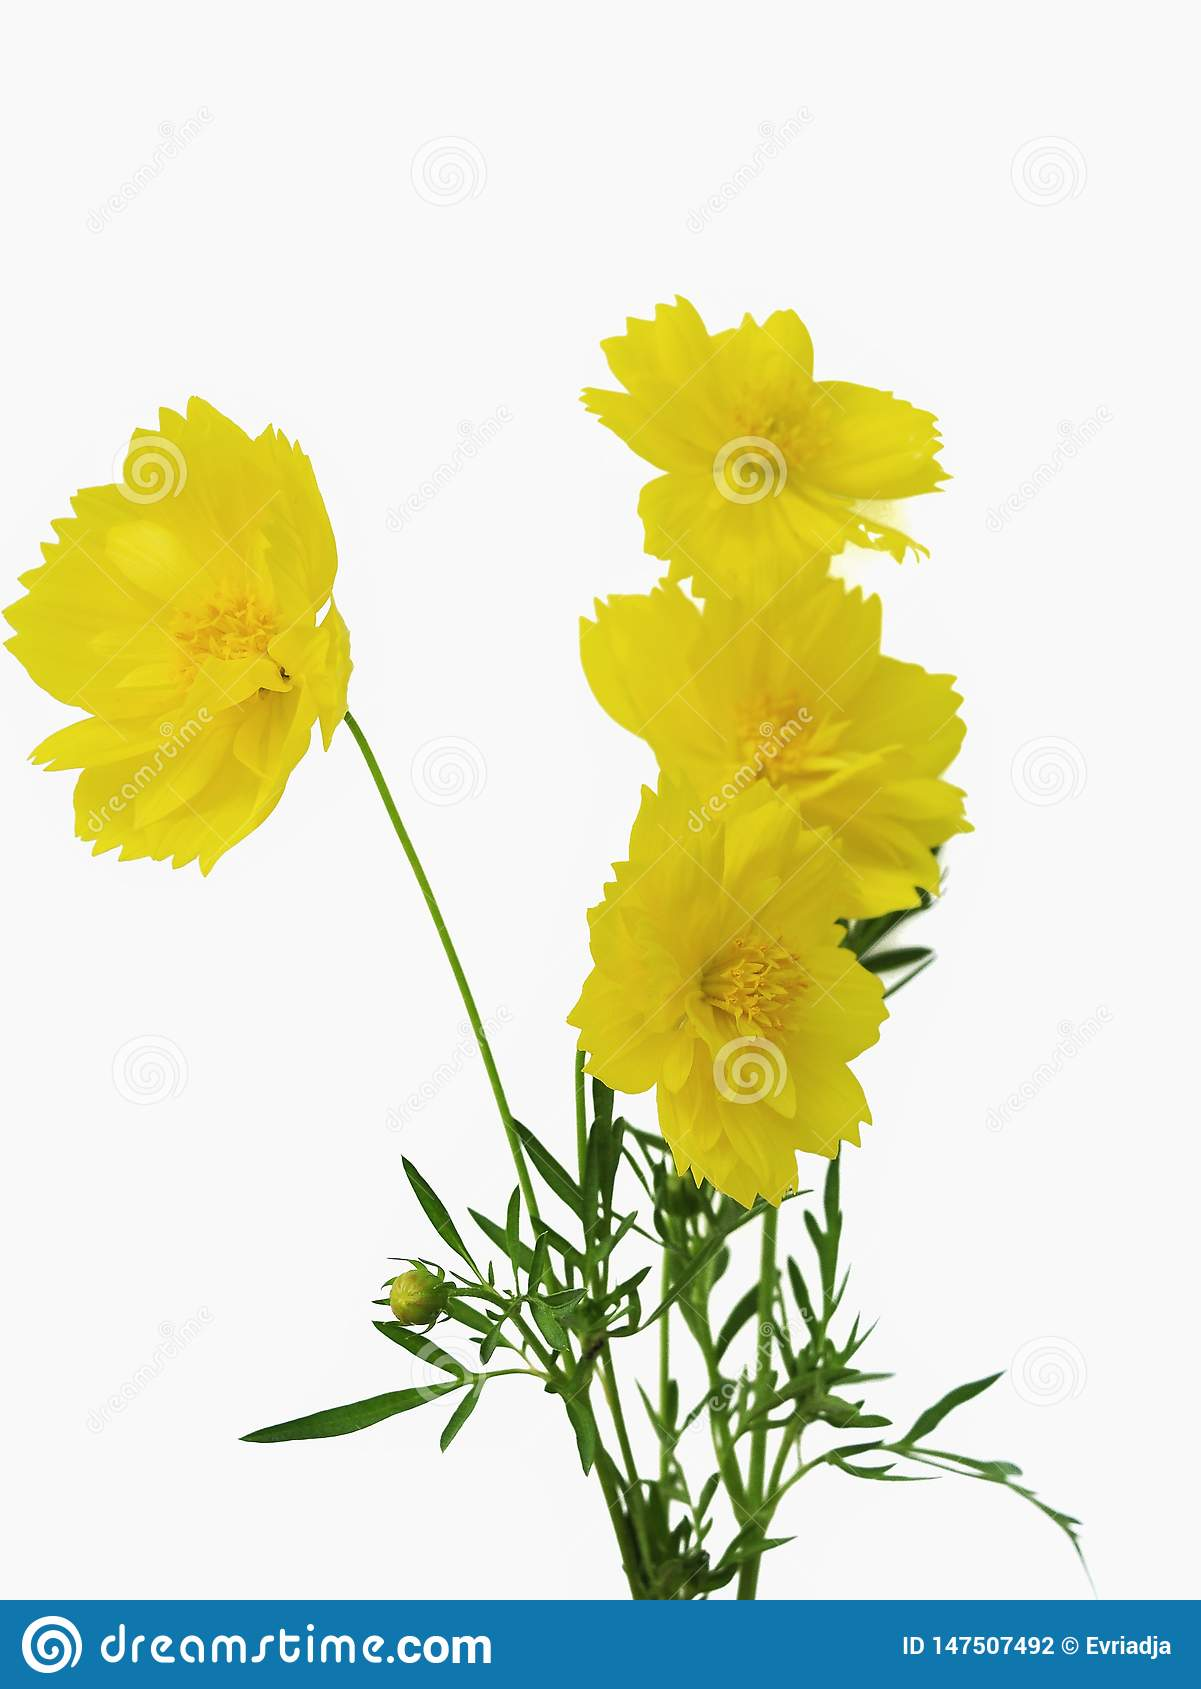 Yellow cosmos flowers isolated on white background